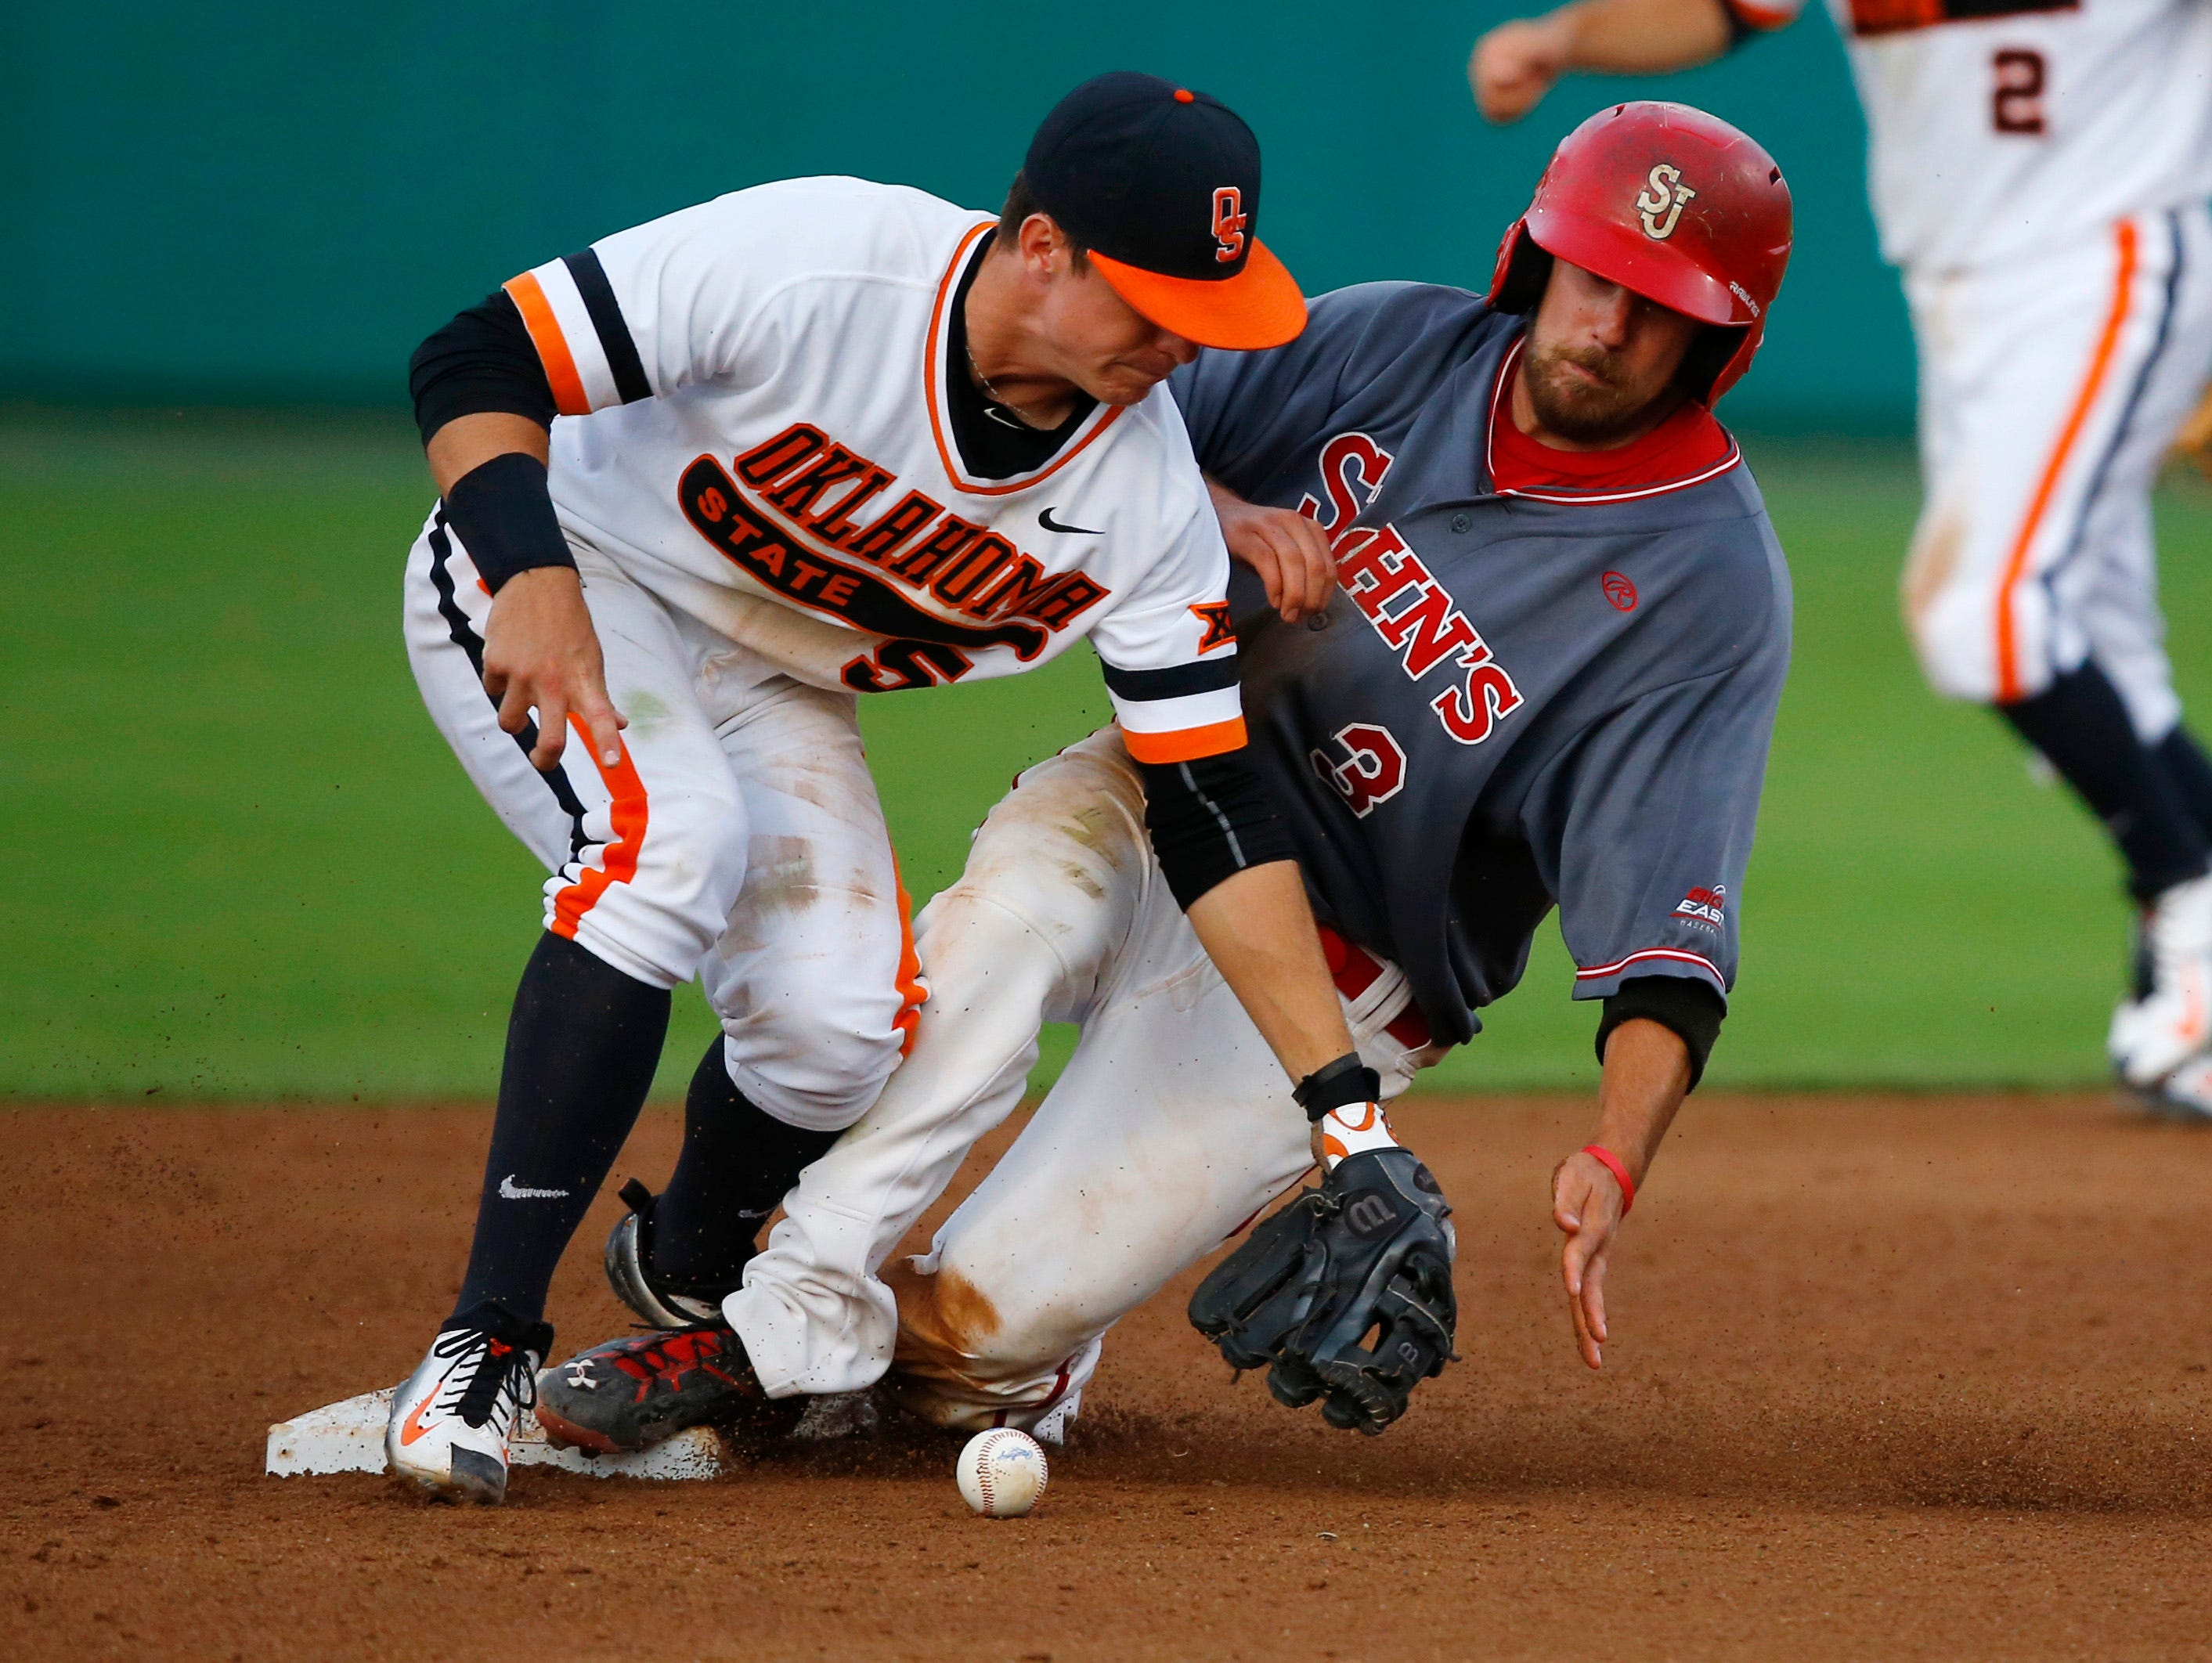 Robert Wayman (3) of St. John's slides safely into second base as Oklahoma State shortstop Donnie Walton (5) takes the throw during their regional game in Stillwater, Okla., on Sunday.